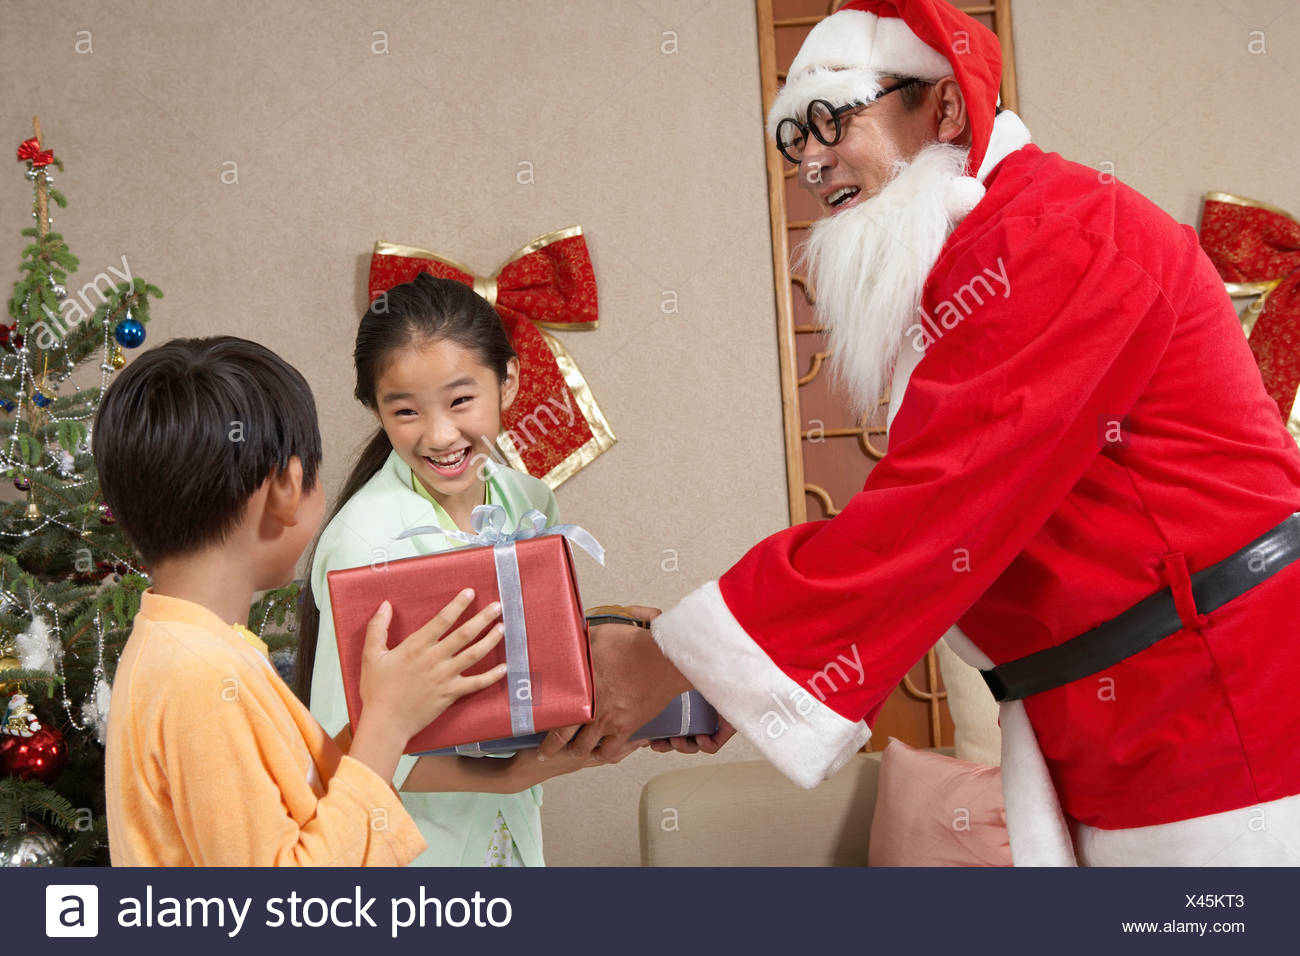 Santa Giving Presents To Young Excited Children - Stock Image